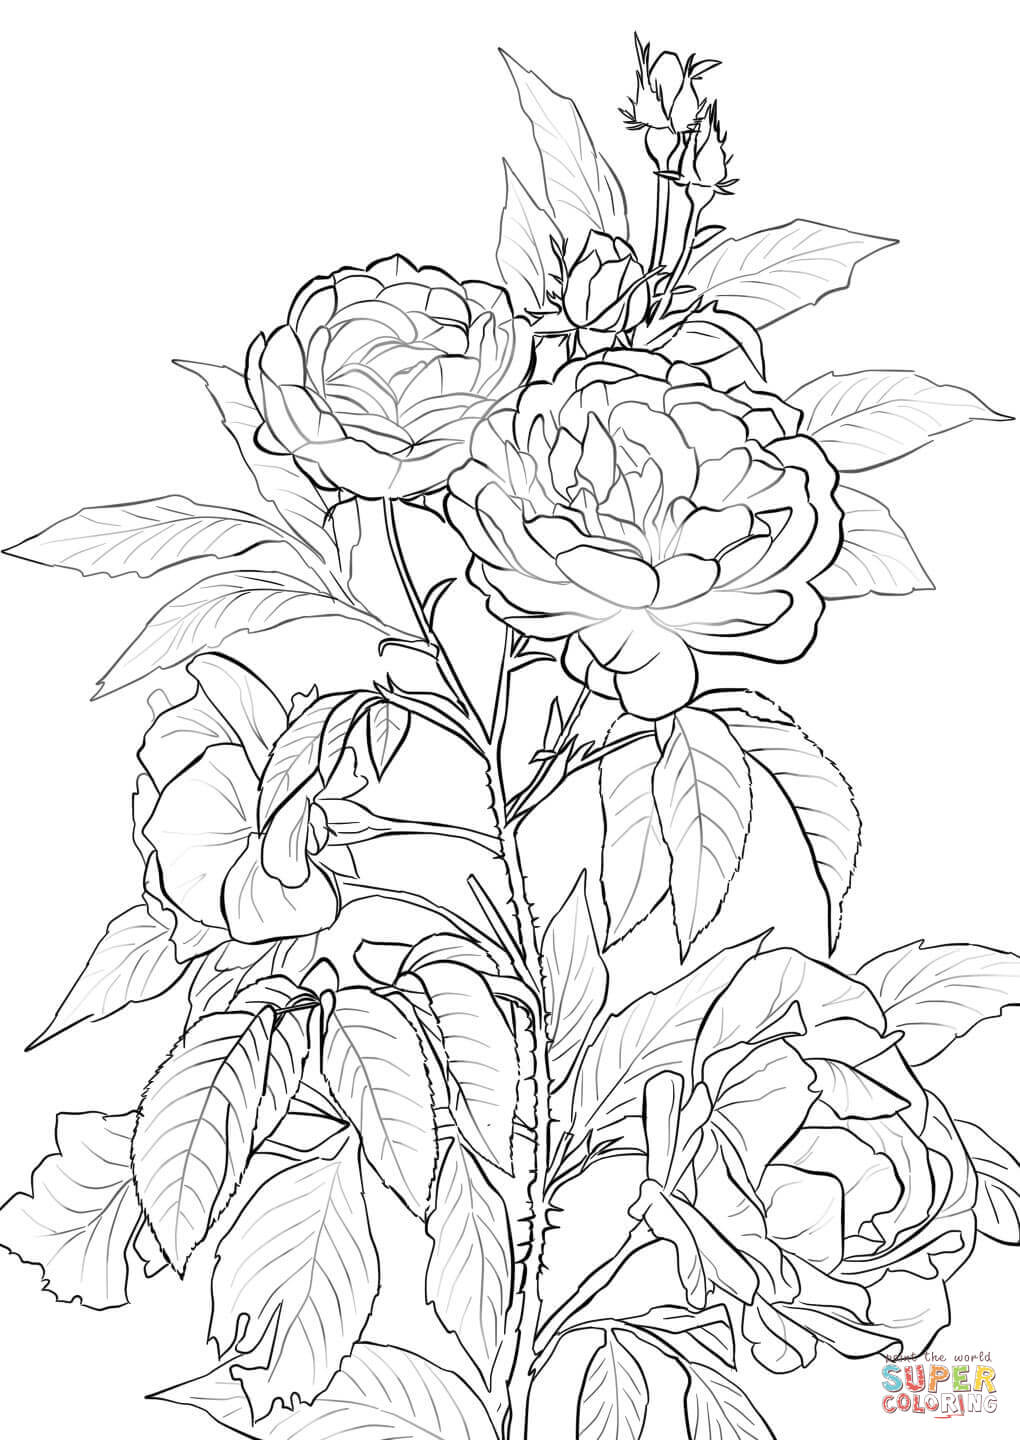 coloring page rose best photos of bouquet of roses coloring pages rose coloring page rose